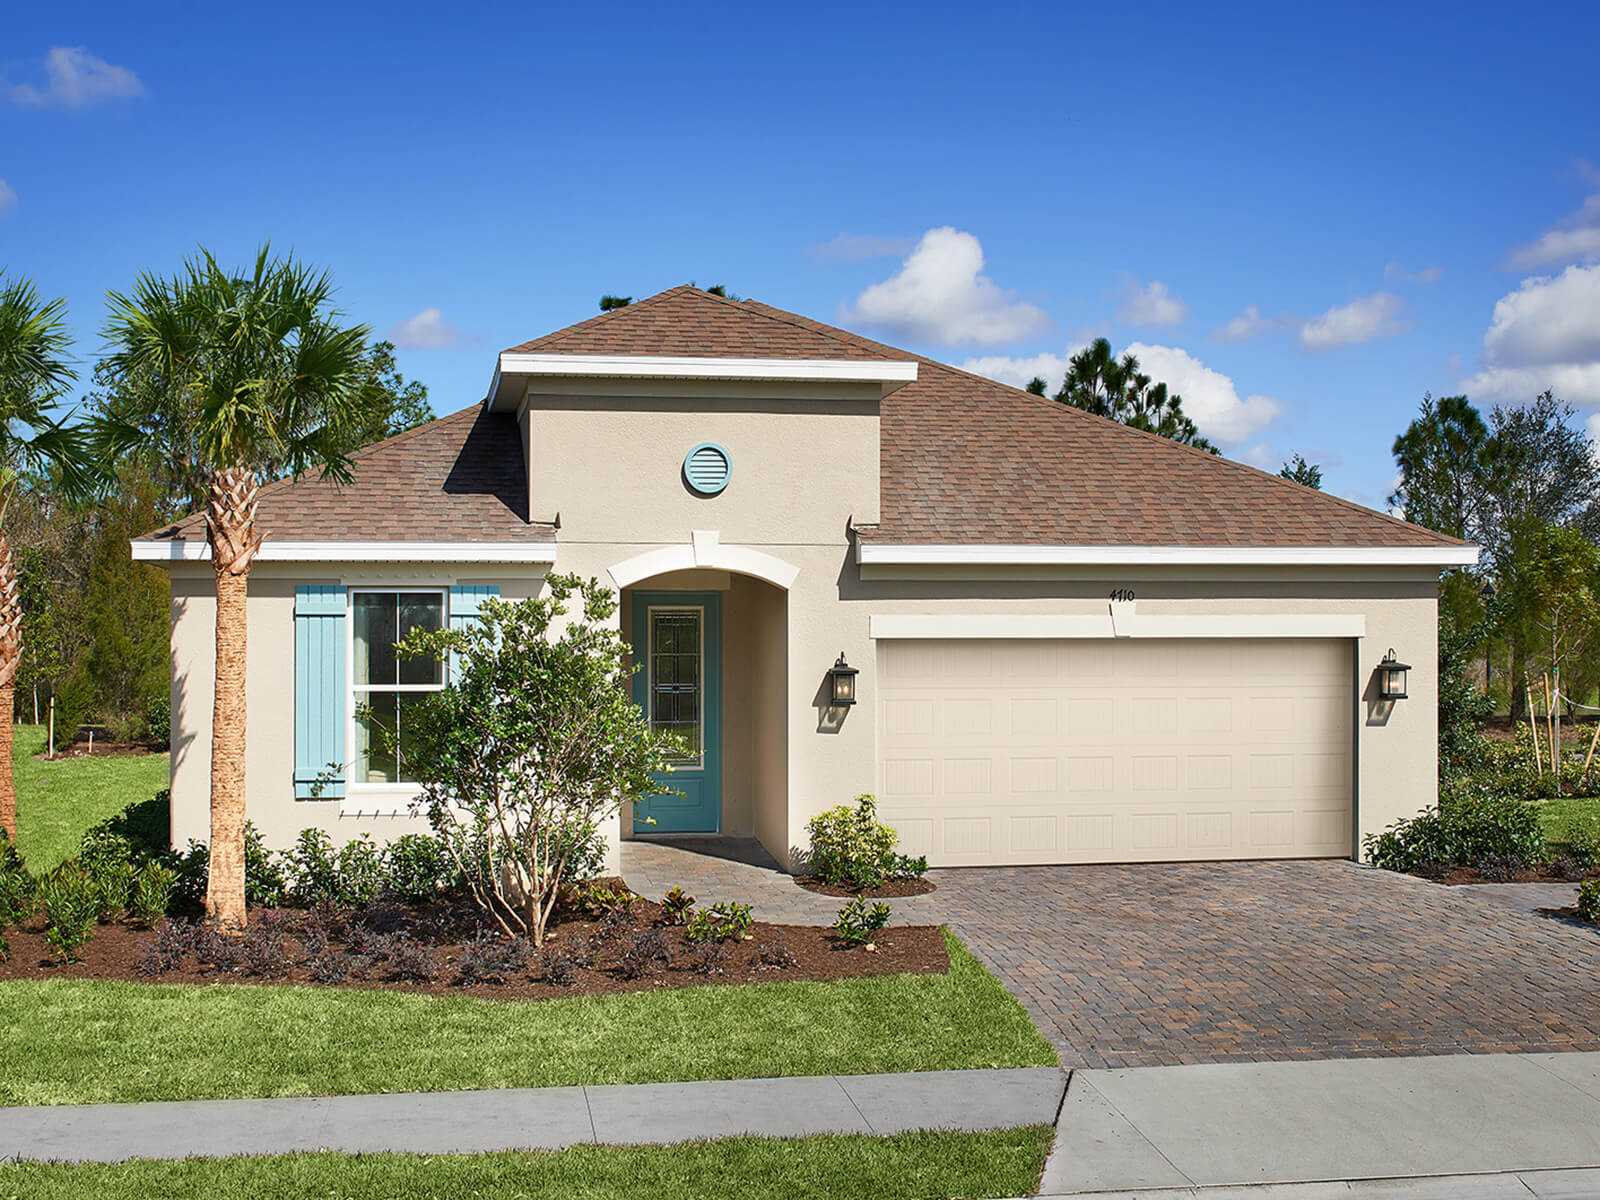 Crosscreek Parrish Florida Real Estate | Parrish Florida Realtor | New Homes Communities